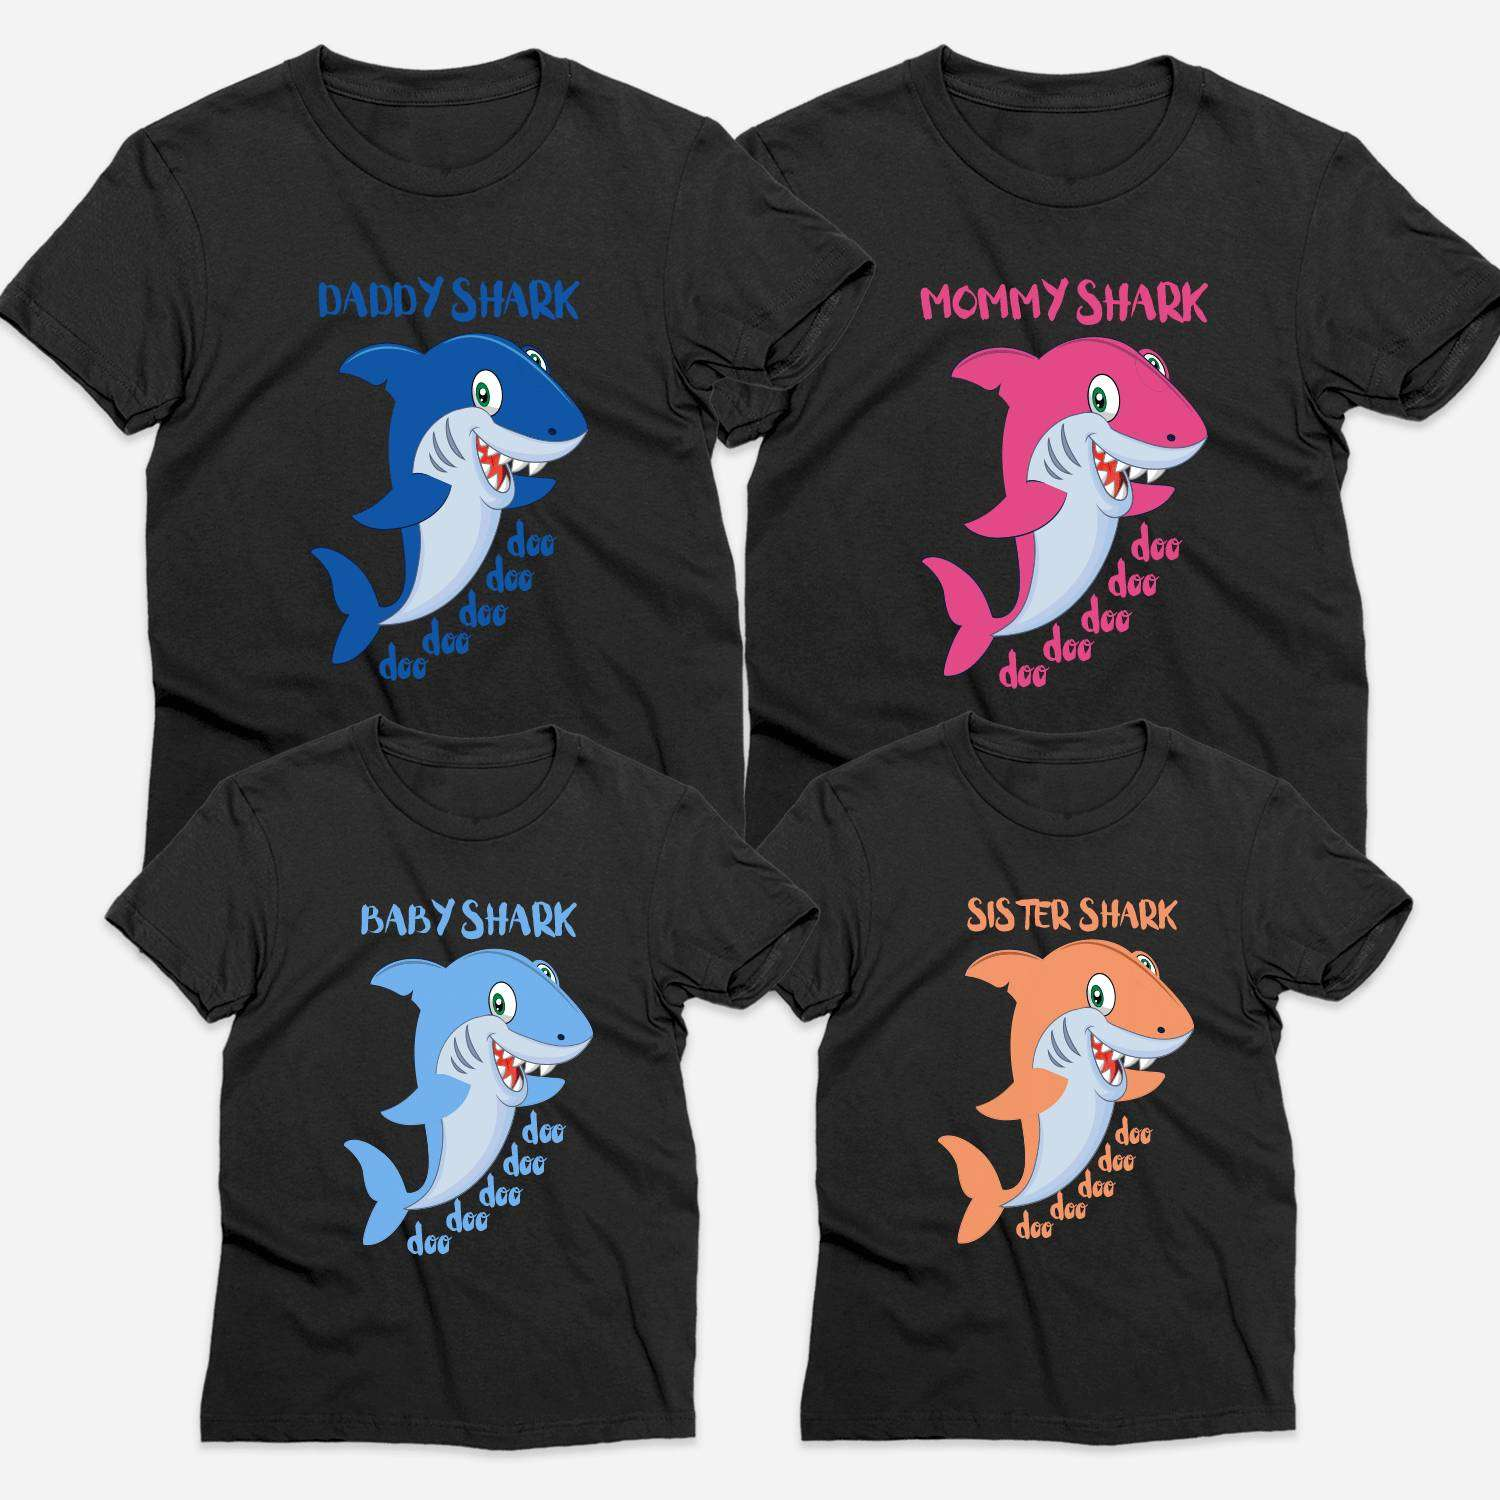 0f774742 Daddy Shark, Mommy Shark, Baby Shark, Shark Family, Family Shirts ...